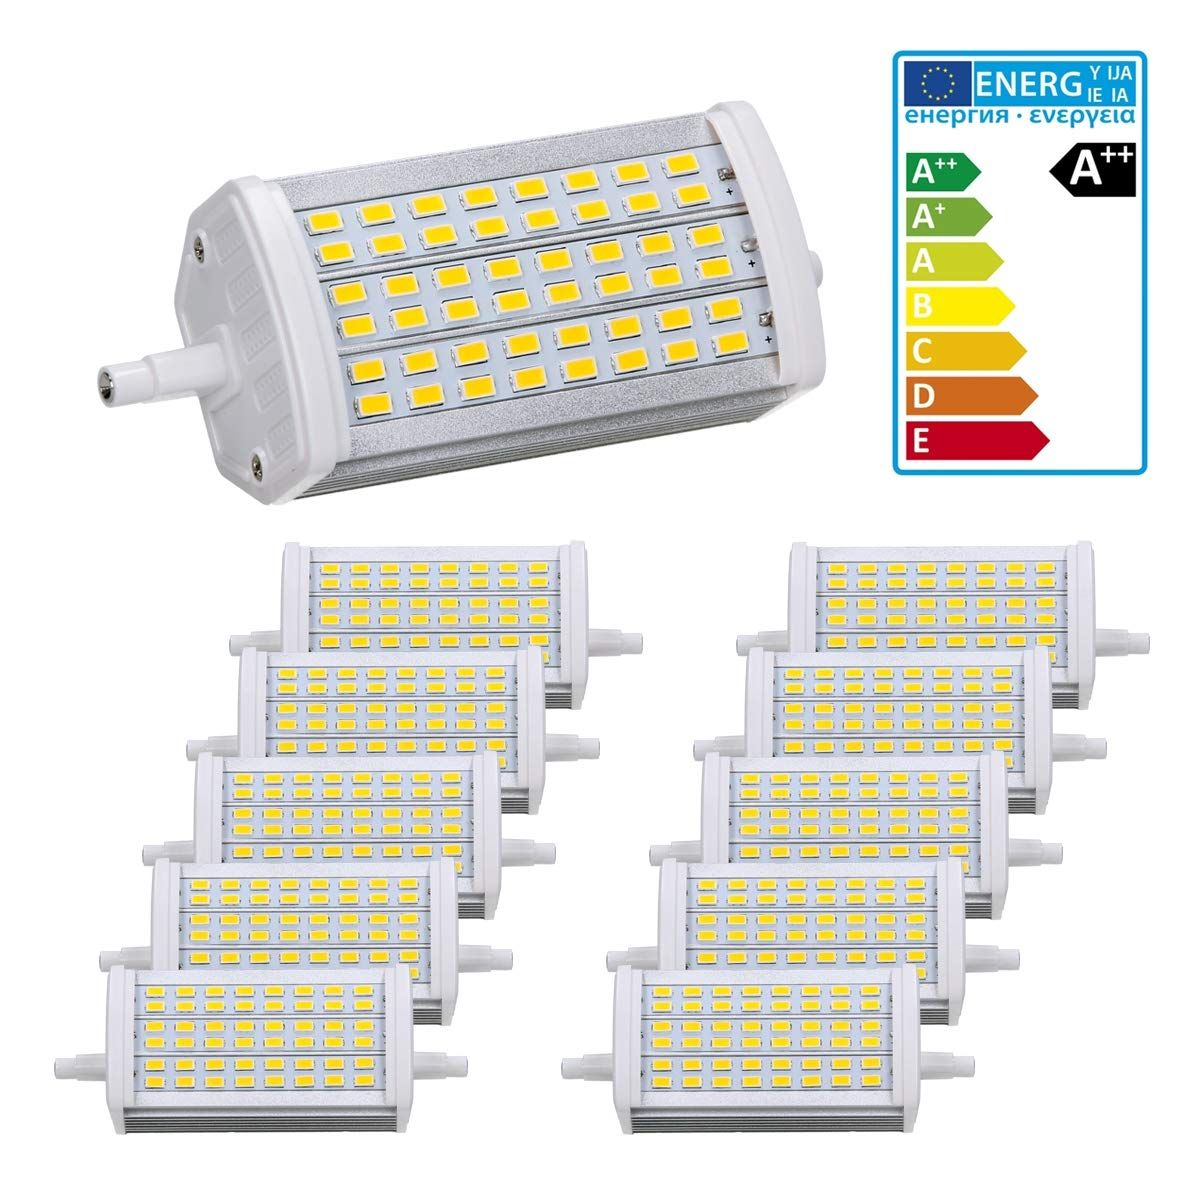 Led R7s Dimmbar Ecd Germany 10er Pack R7s Led Leuchtmittel 15w - 118mm - 800 Lumen - Smd5730 - Ac 220-240v - 180� Abstrahlwinkel - Ersetzt 90w Halogenbirne - Neutralwei� - Nich…